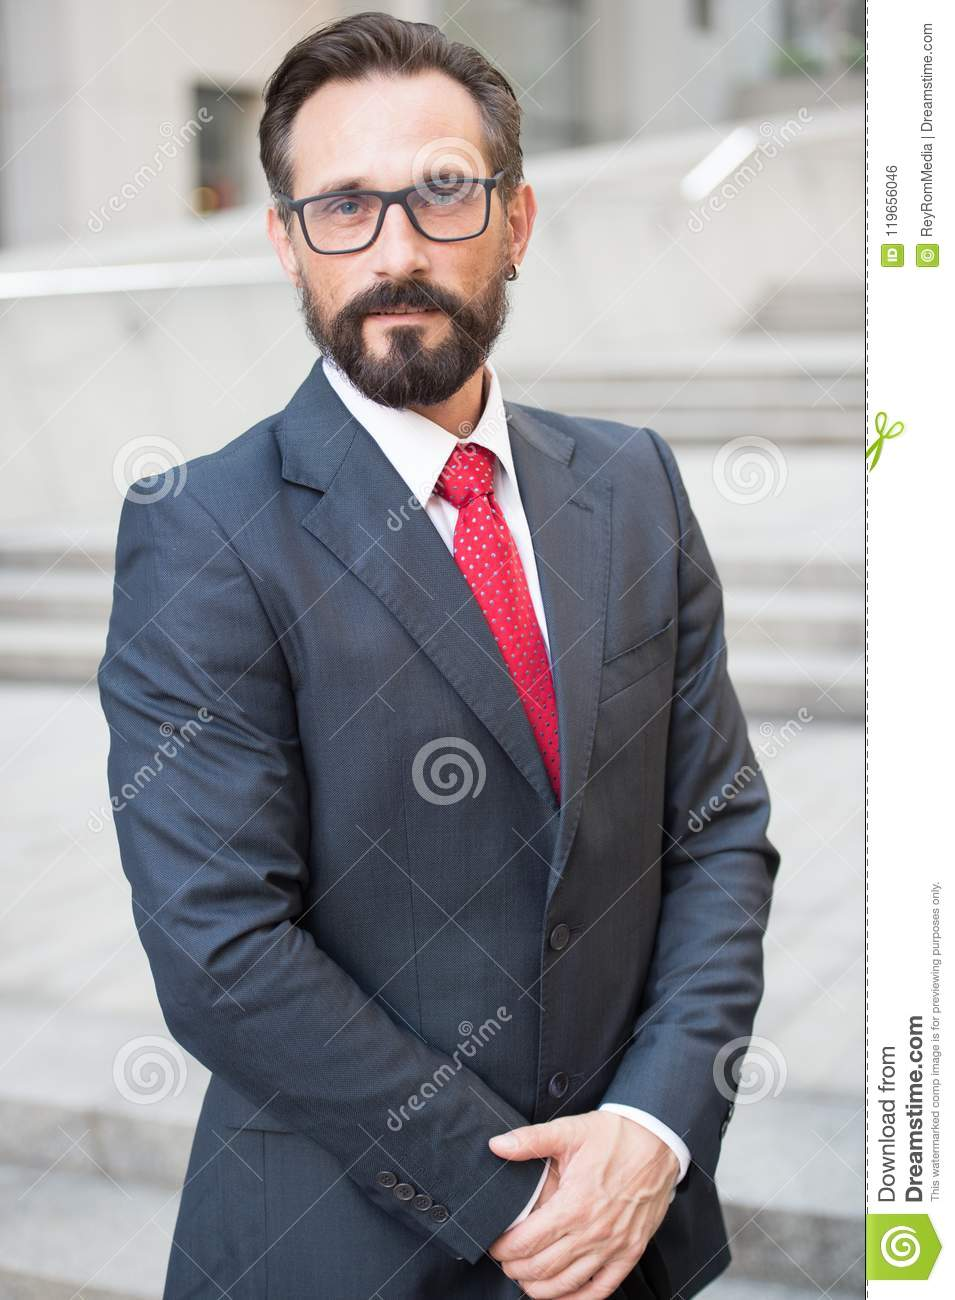 Businessman outdoor on office center background. Successful business person portrait. Professional people